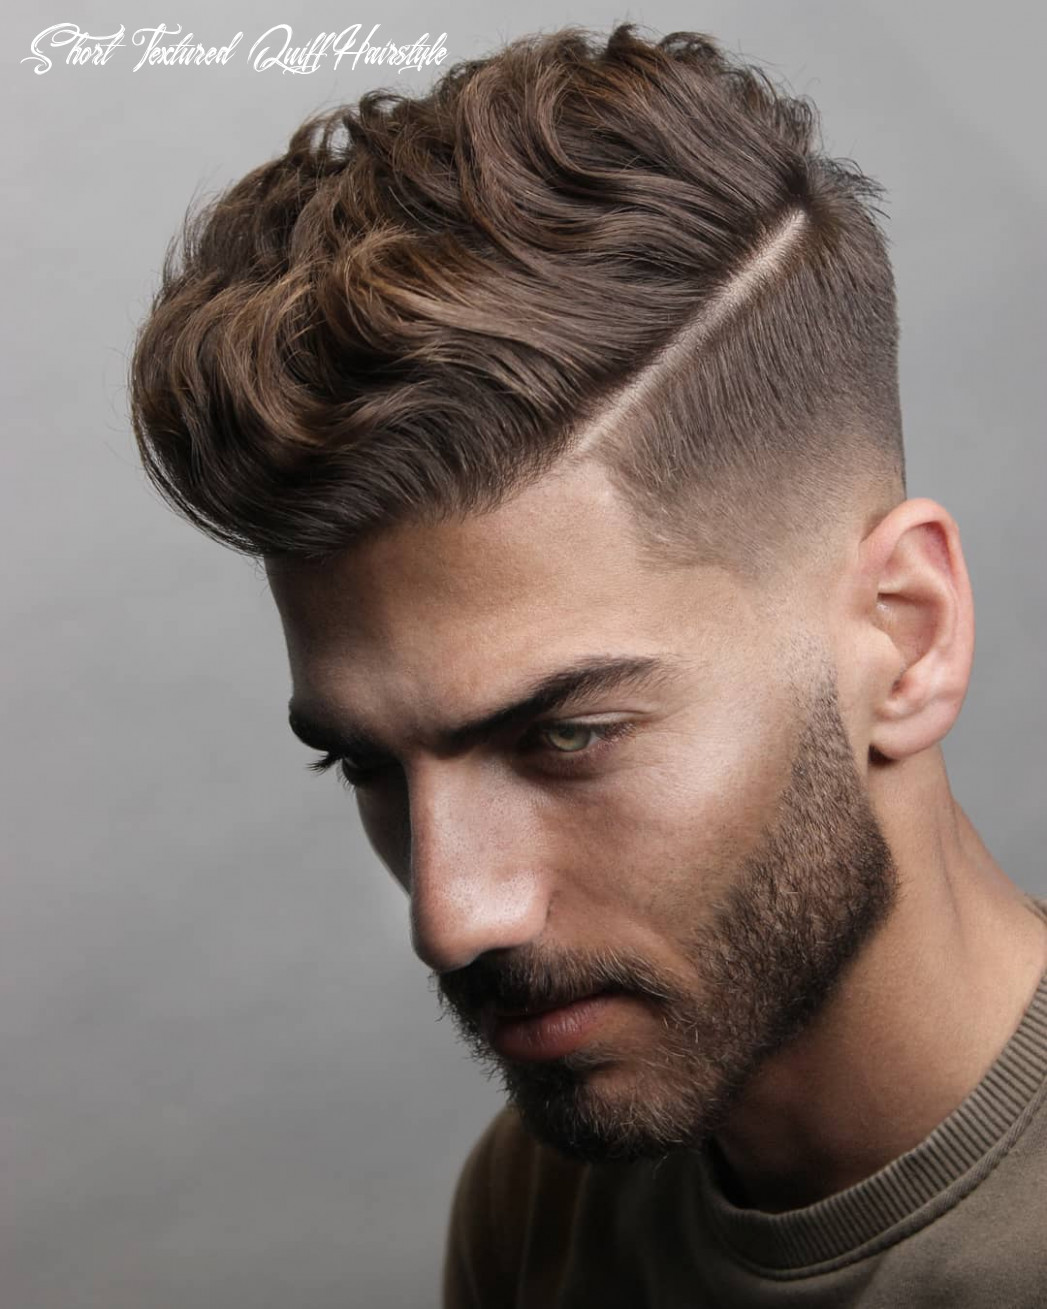 12 short on sides long on top haircuts for men | man haircuts short textured quiff hairstyle